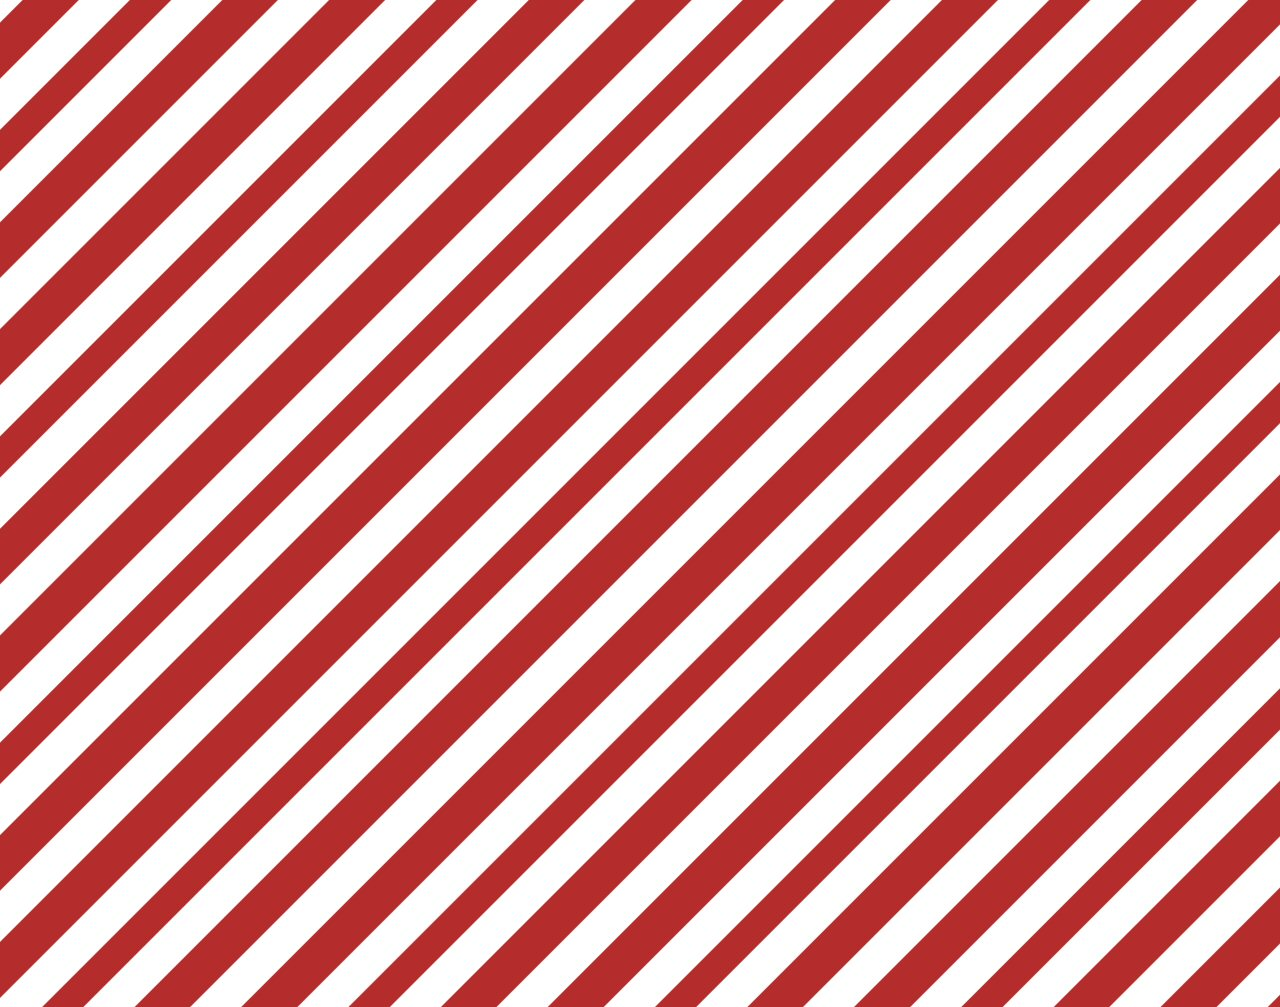 Candy Cane Striped Background Volvoab 1280x1007